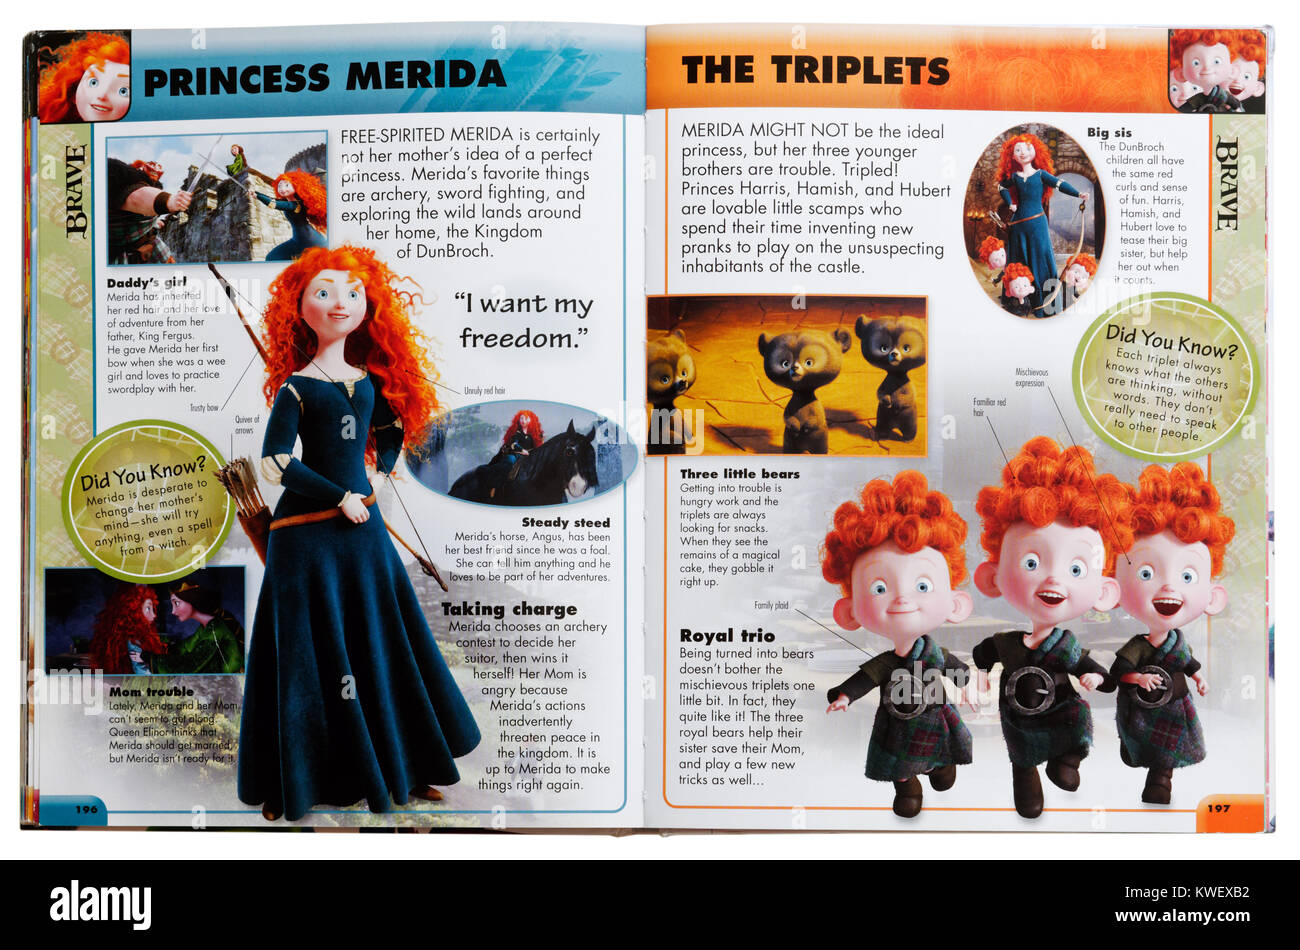 Pixar character Princess Merida from the film Brave in an Pixar Character Guide - Stock Image